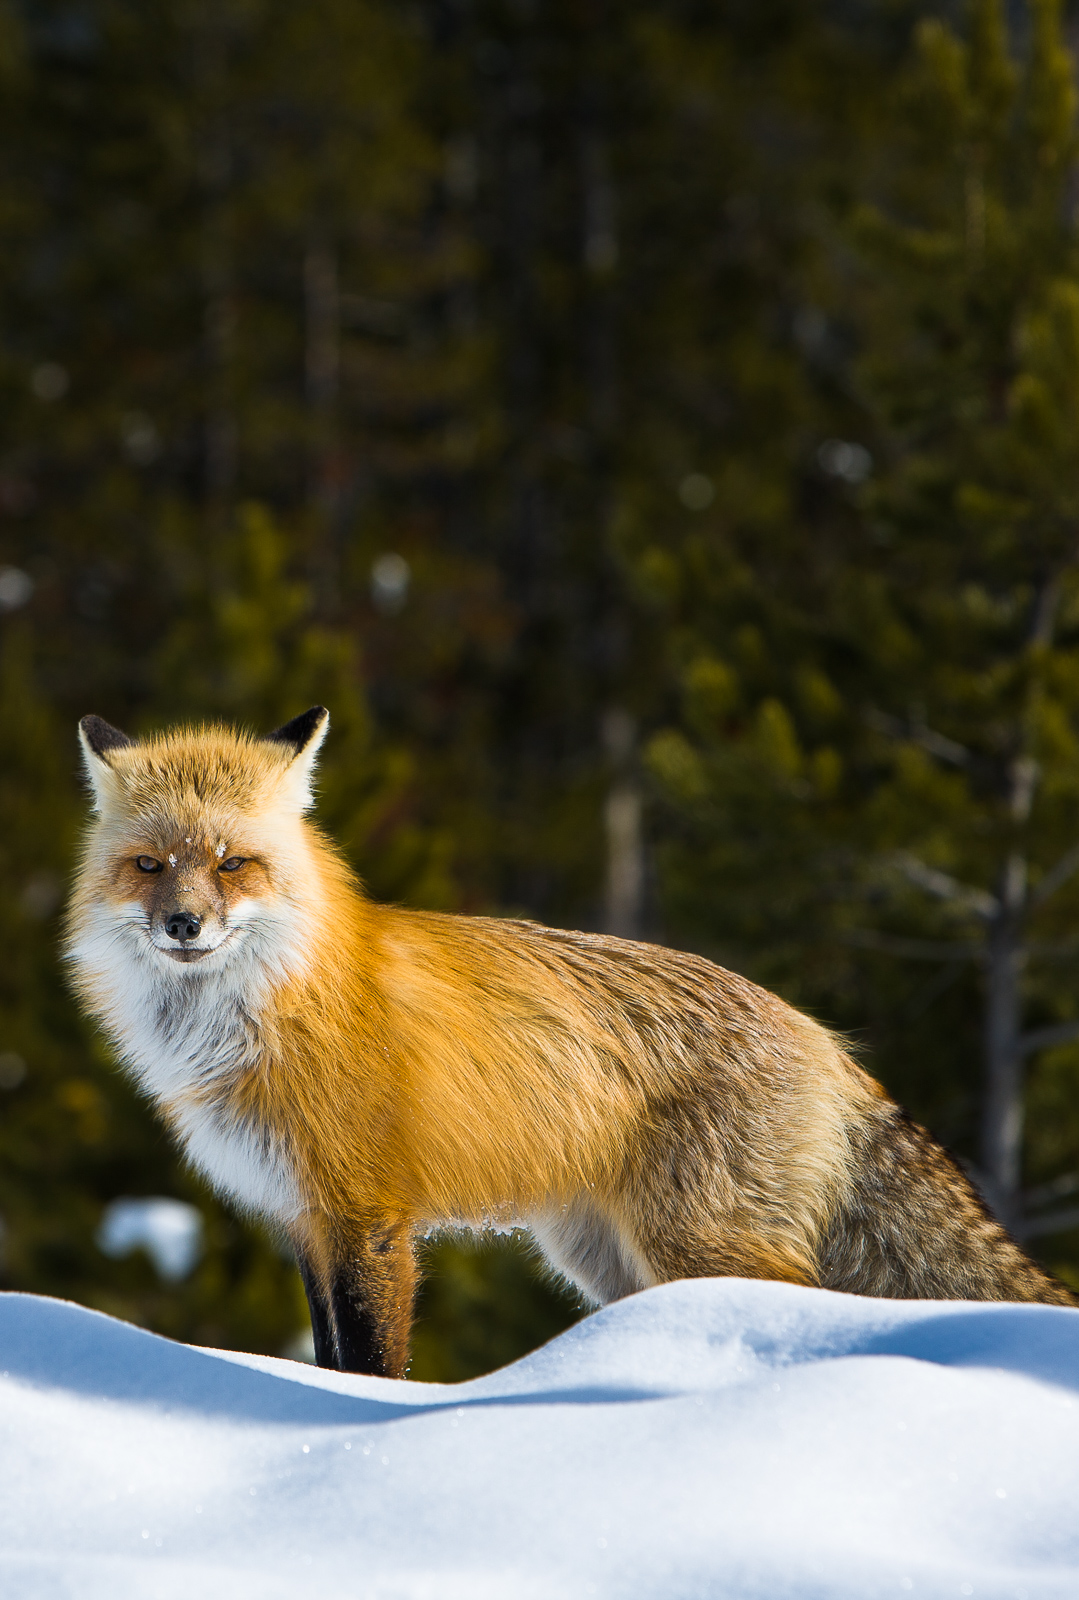 Sheer Fox,Grand, Teton National Park,antarctic,red,fox,vertical,black, photo